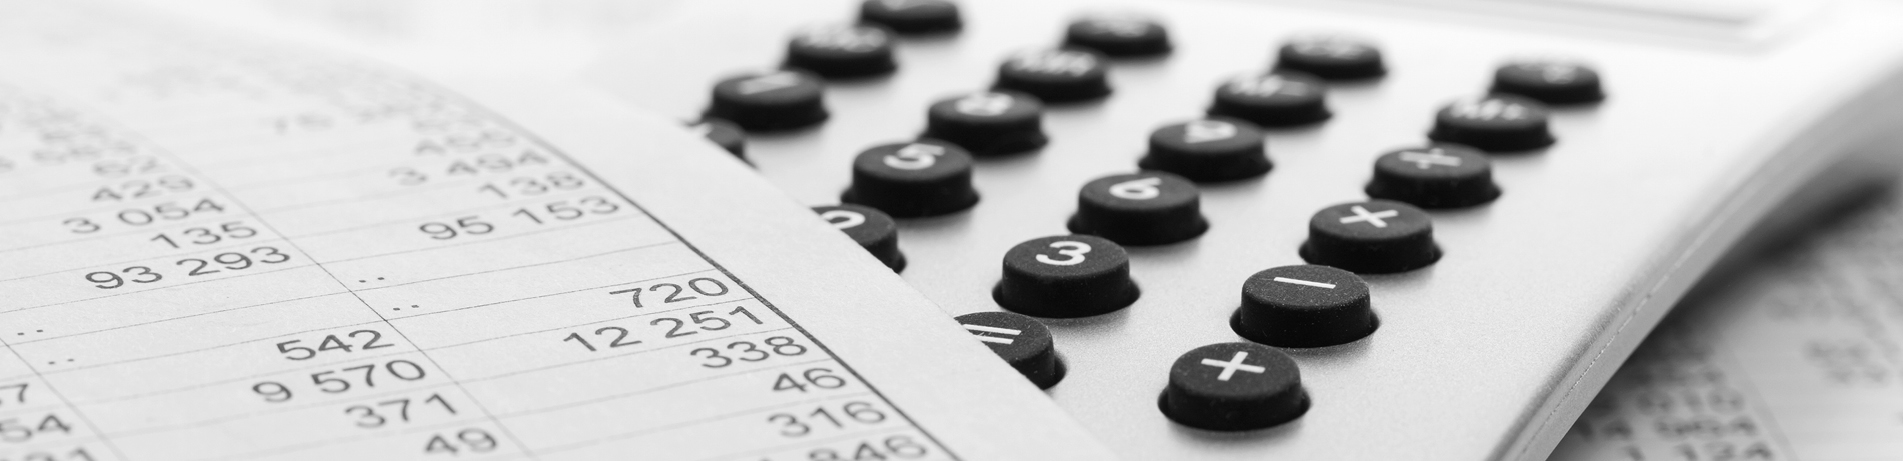 Image of a financial report and calculator